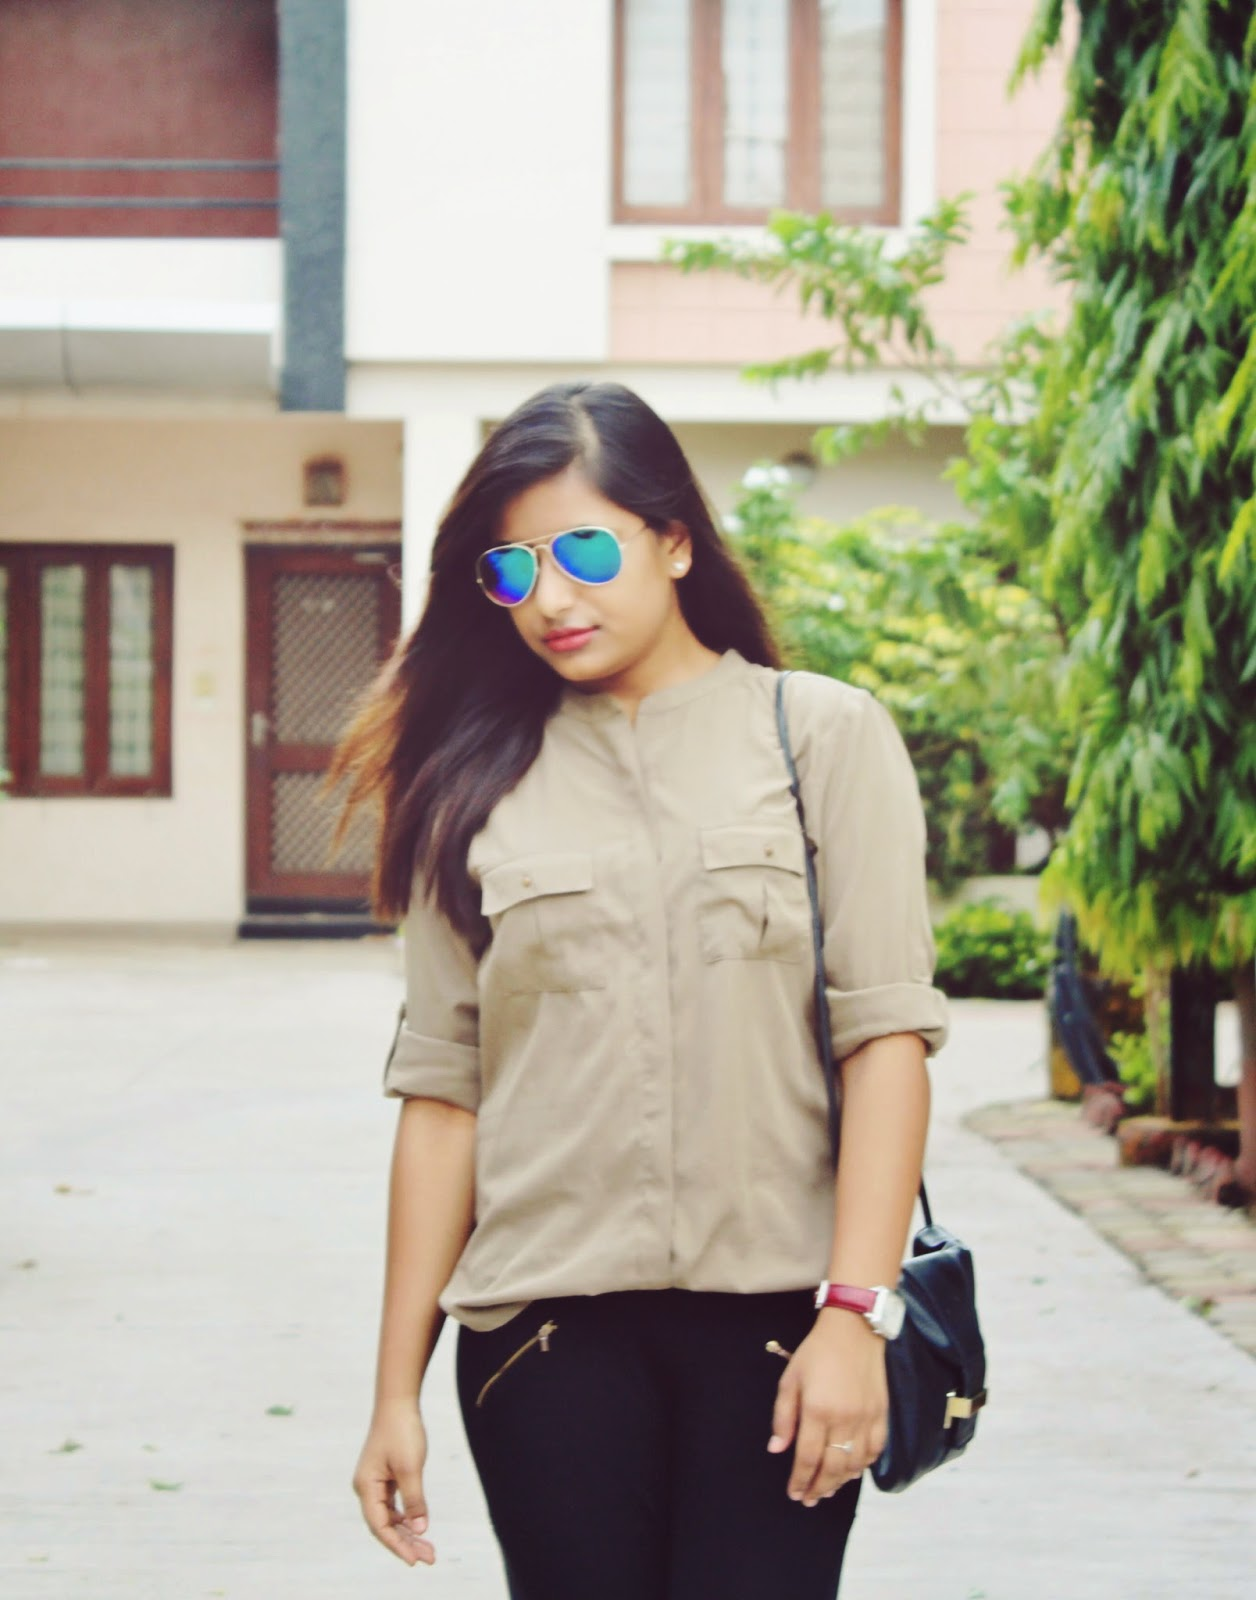 kajol paul, fashion blogger, the style sorbet, fashion blog, street style, outfit, personal style, casual, look